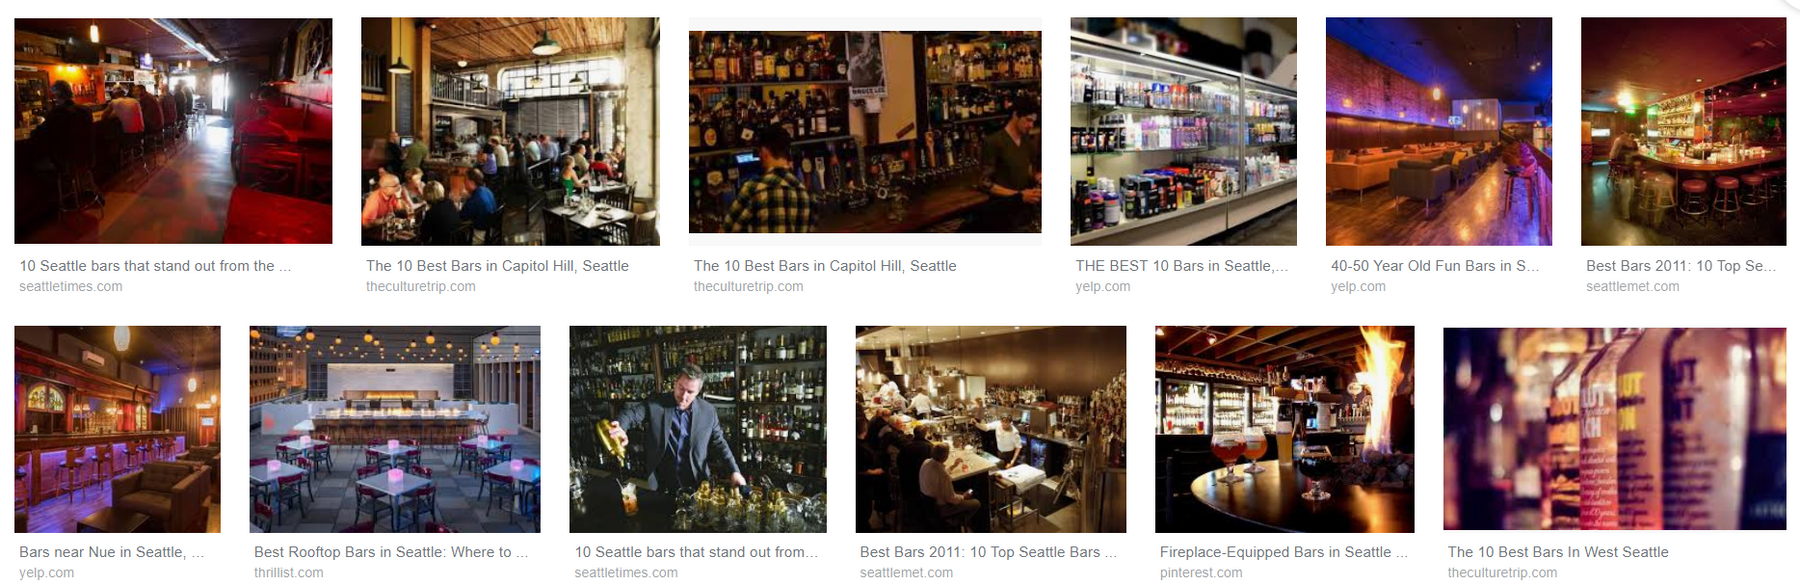 10 Places for bar hopping in Seattle, Washington